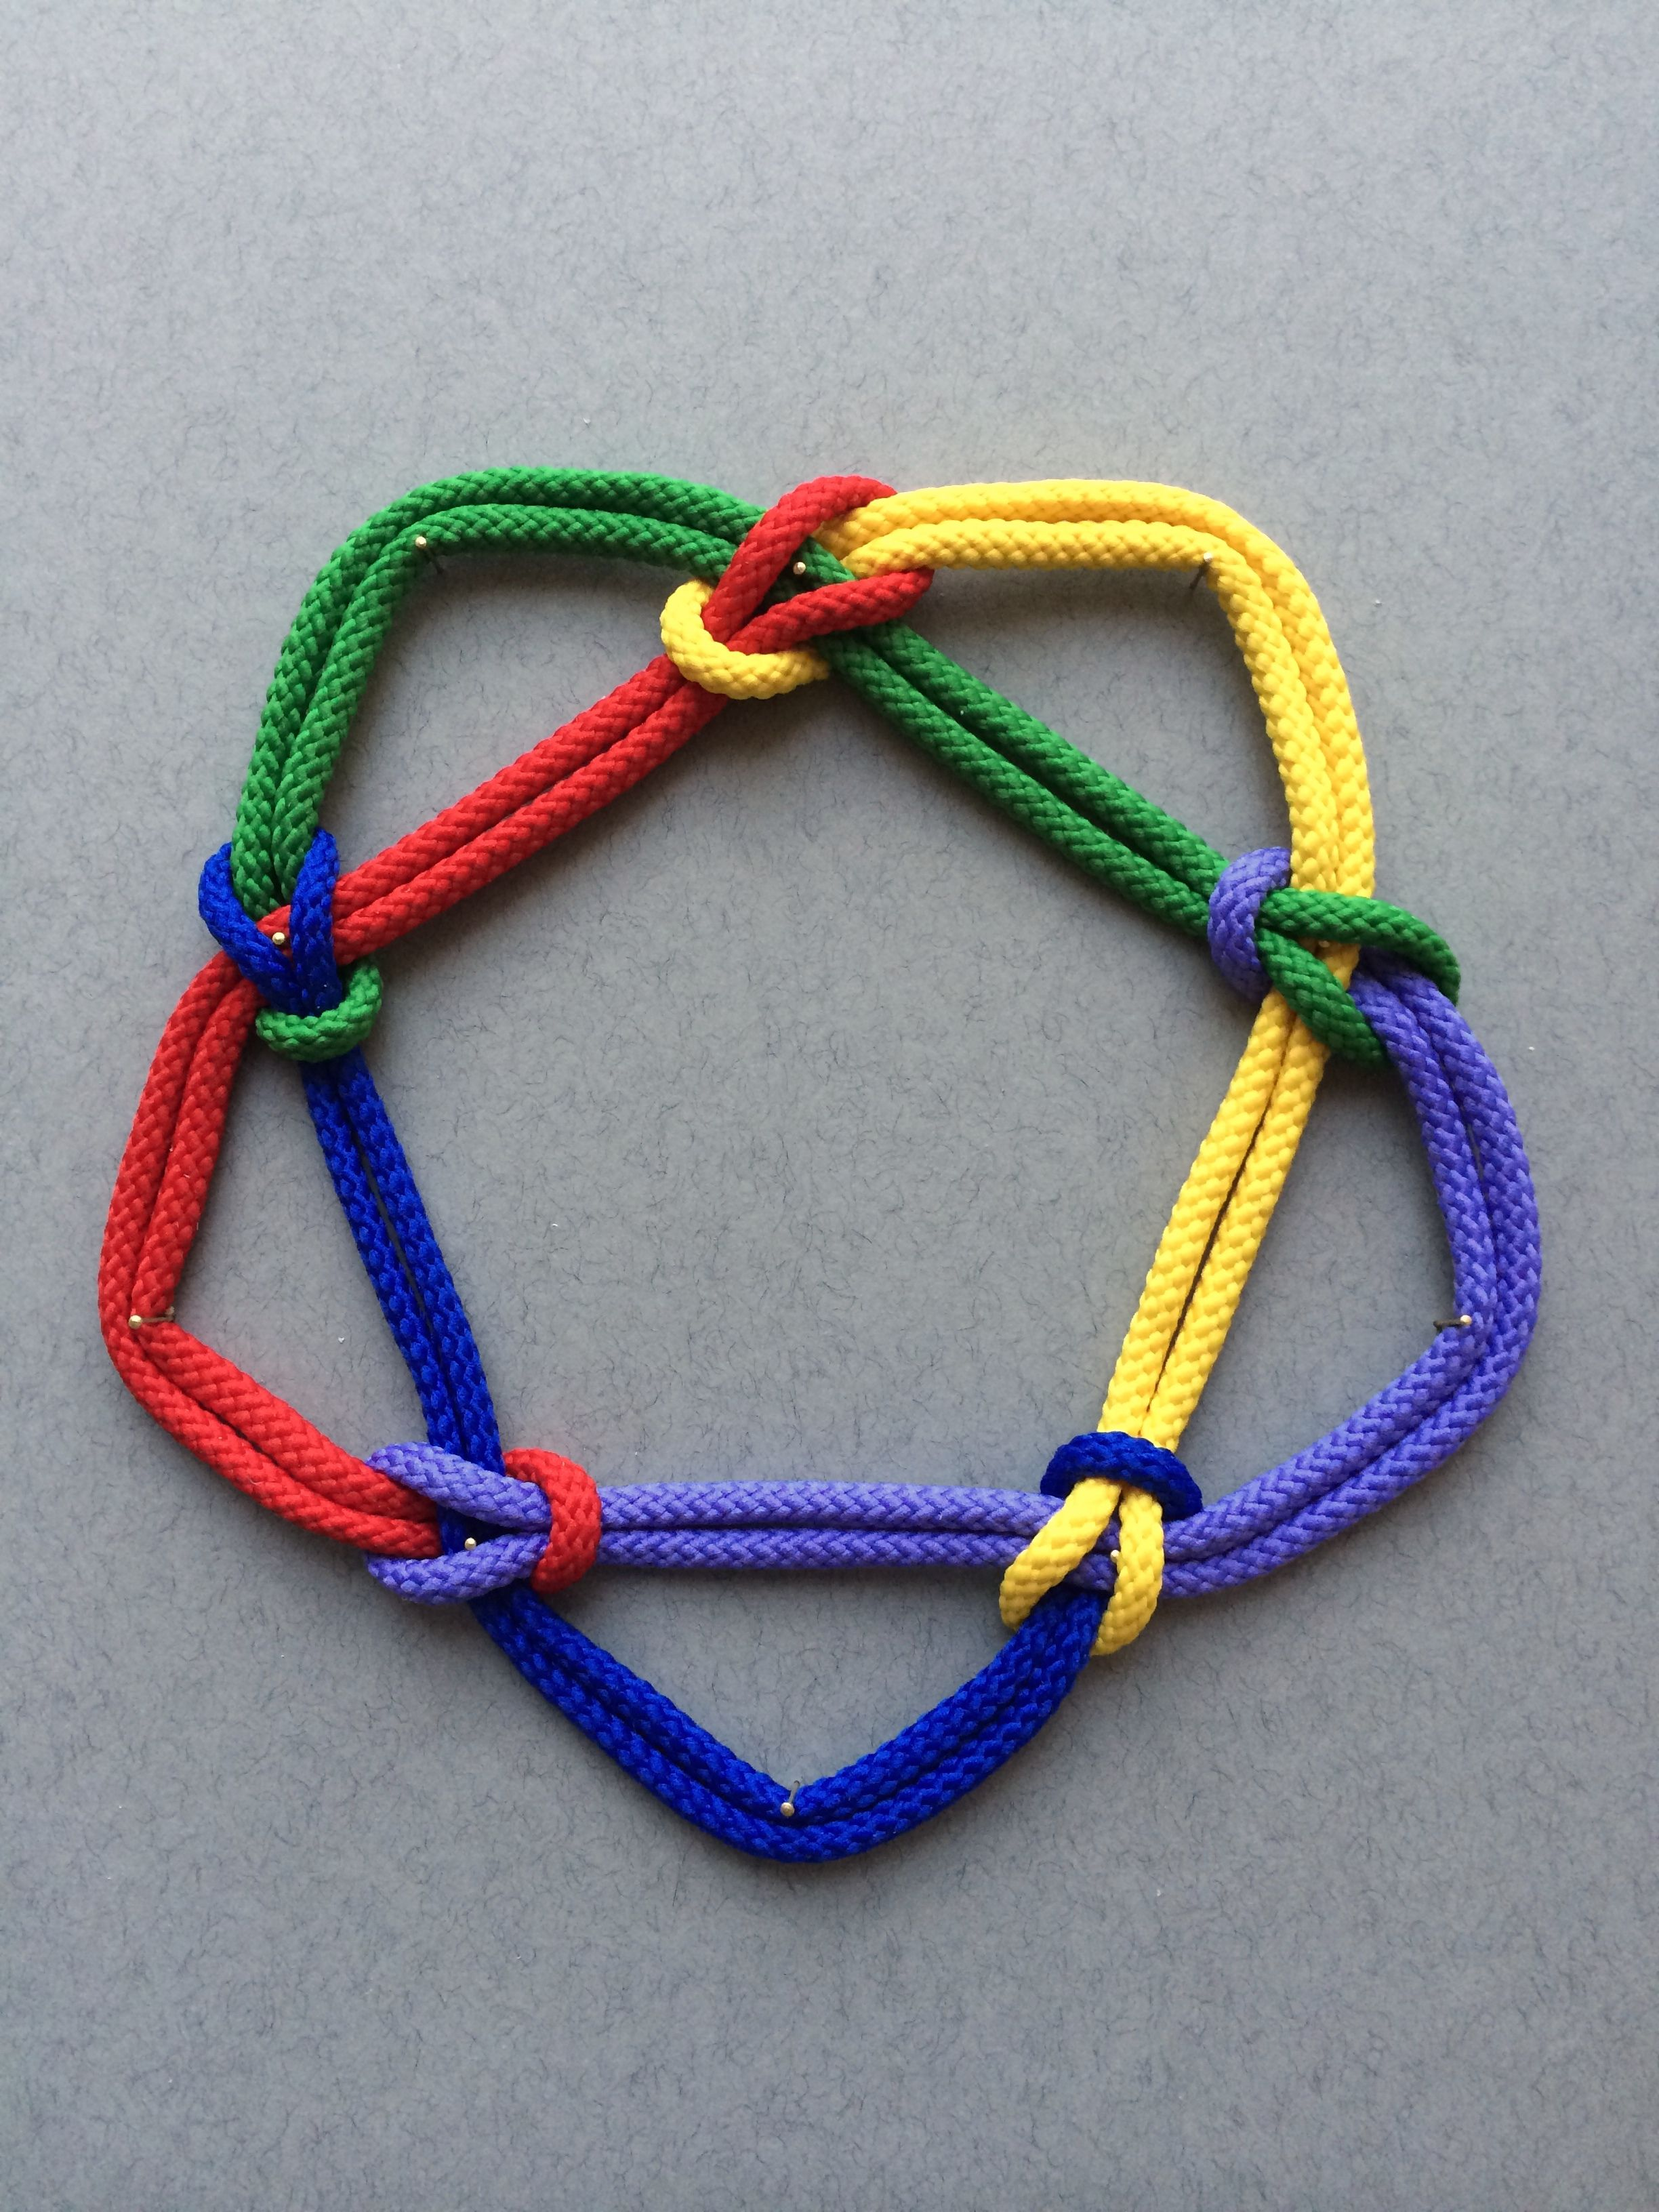 5-1 Based on the first of the two mathematical knots with five crossings. The new colour added is mauve. The 5-1 knot is also known as the cinquefoil knot. See https://en.wikipedia.org/wiki/Cinquefoil_knot for more details. Remember I am changing cord colour at each under-crossing, using reef knots to join the cords, and feeding the over-crossing cord through the reef knots.